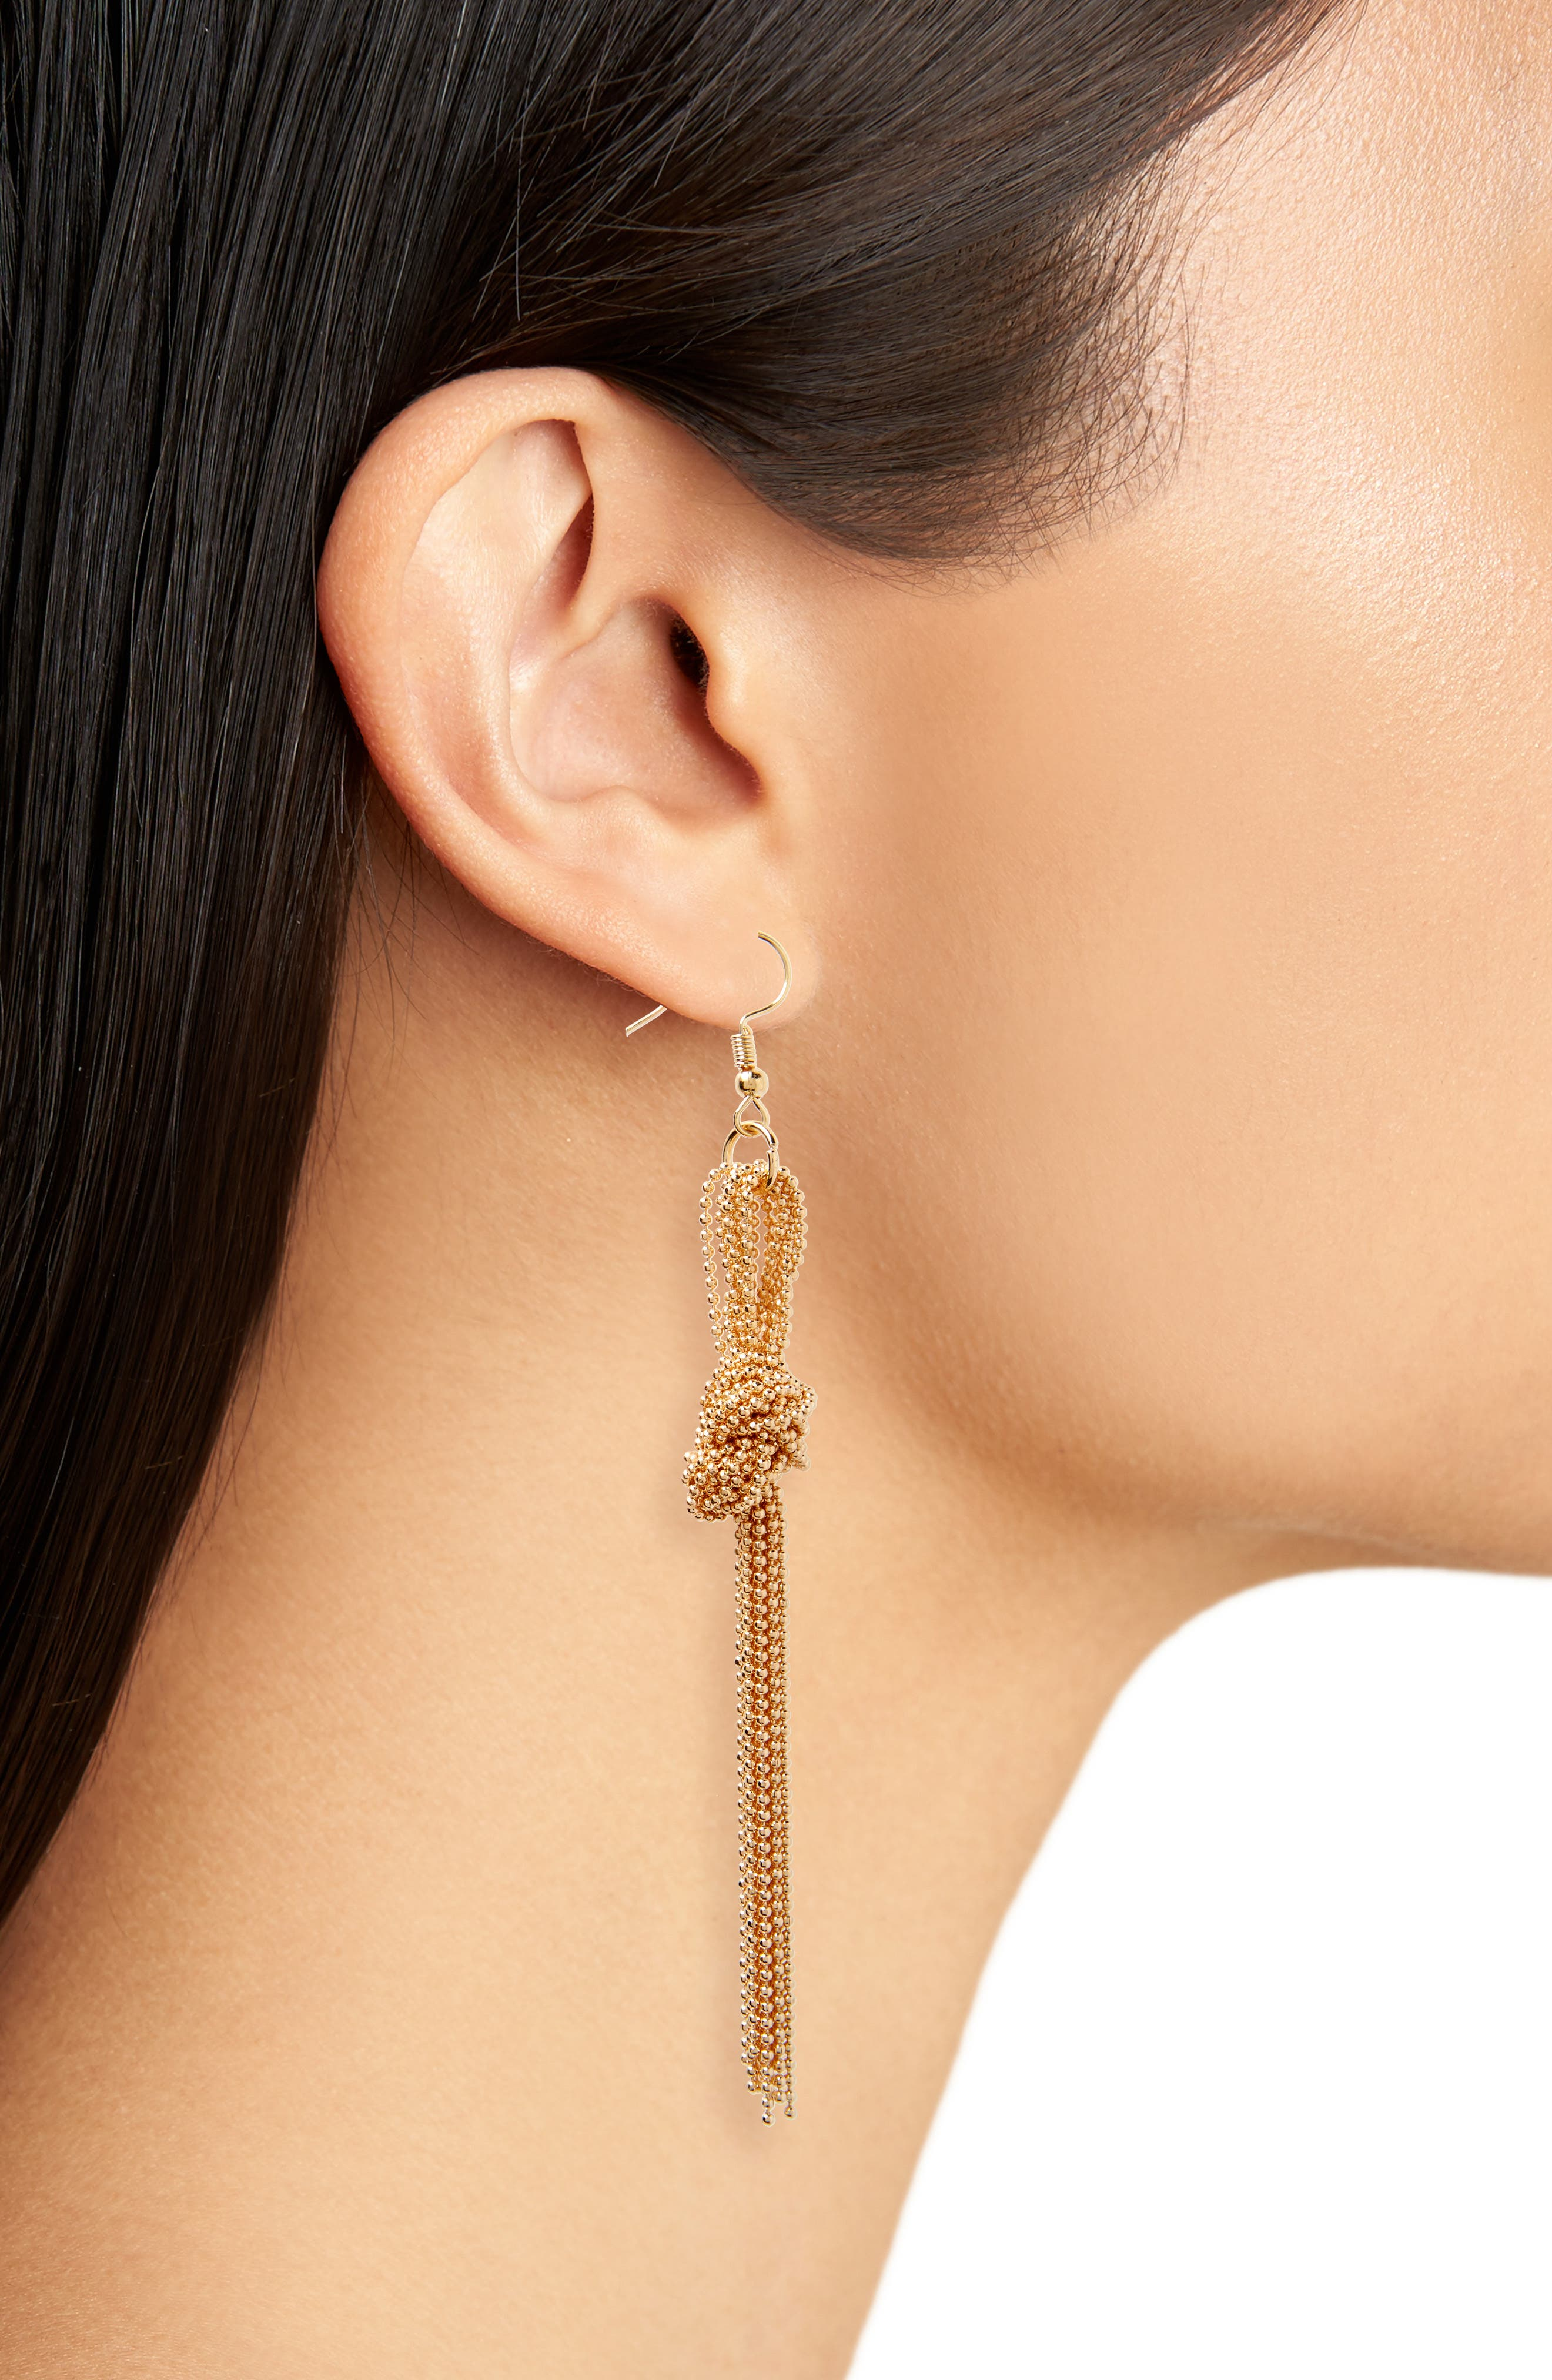 Knotted Bead Chain Linear Earrings,                             Alternate thumbnail 2, color,                             GOLD